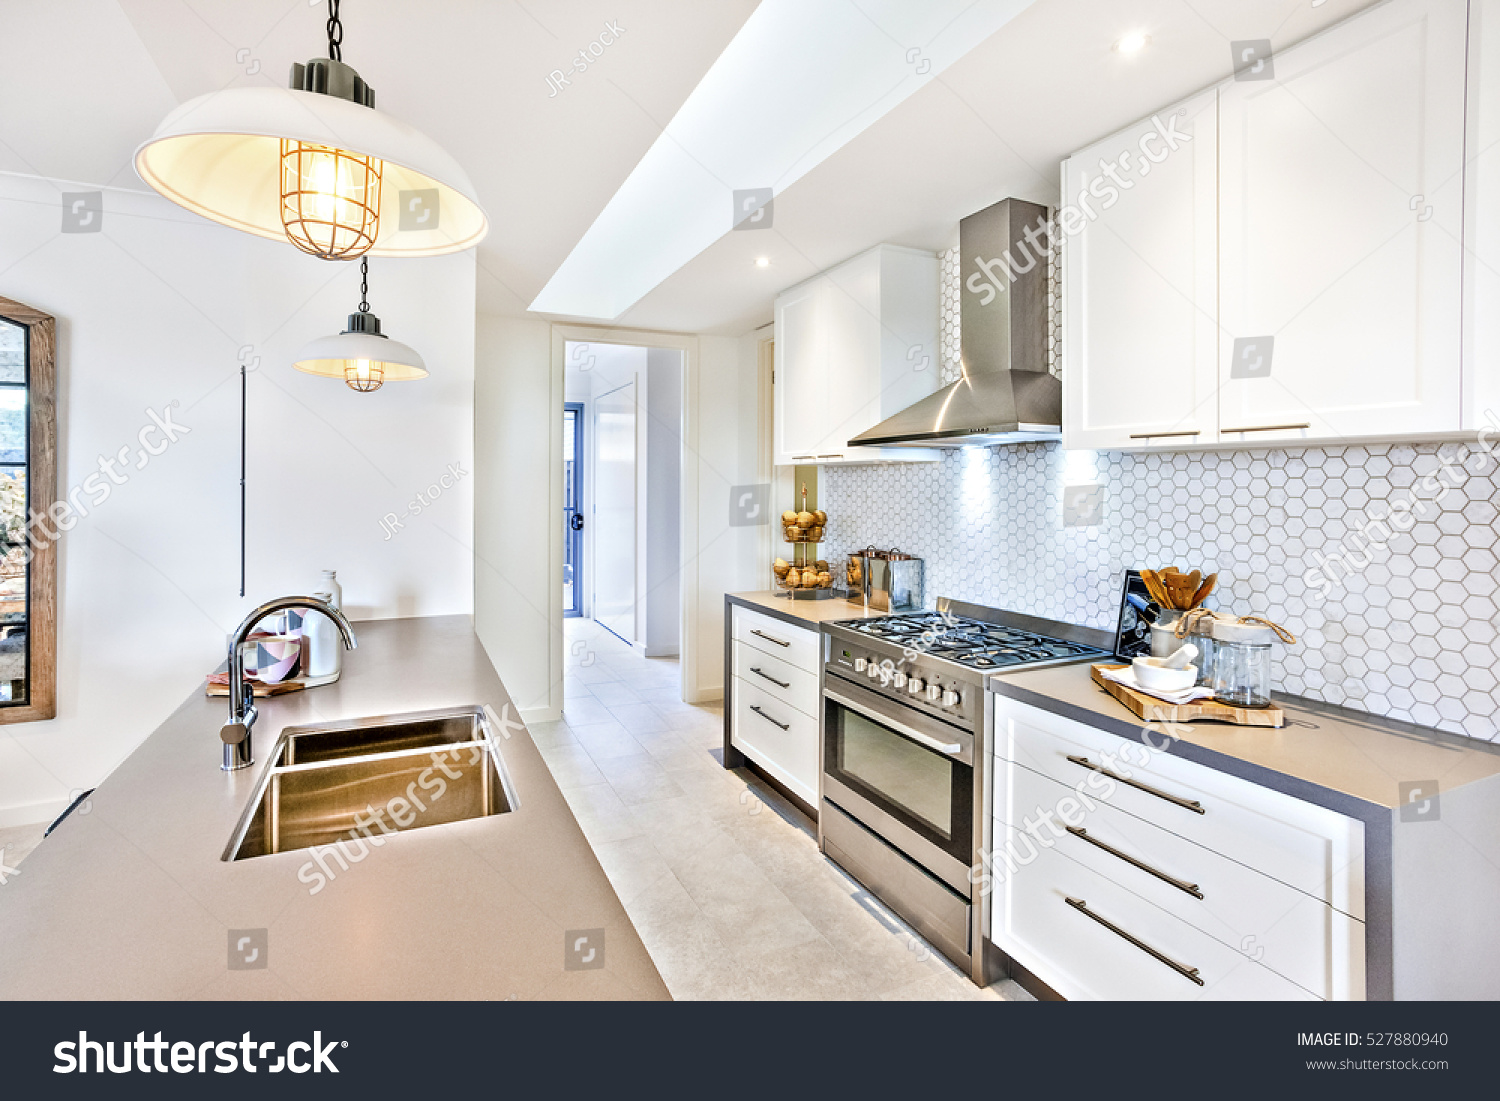 Luxury kitchen with an oven and stove next to pantry cupboards on the wall hanging